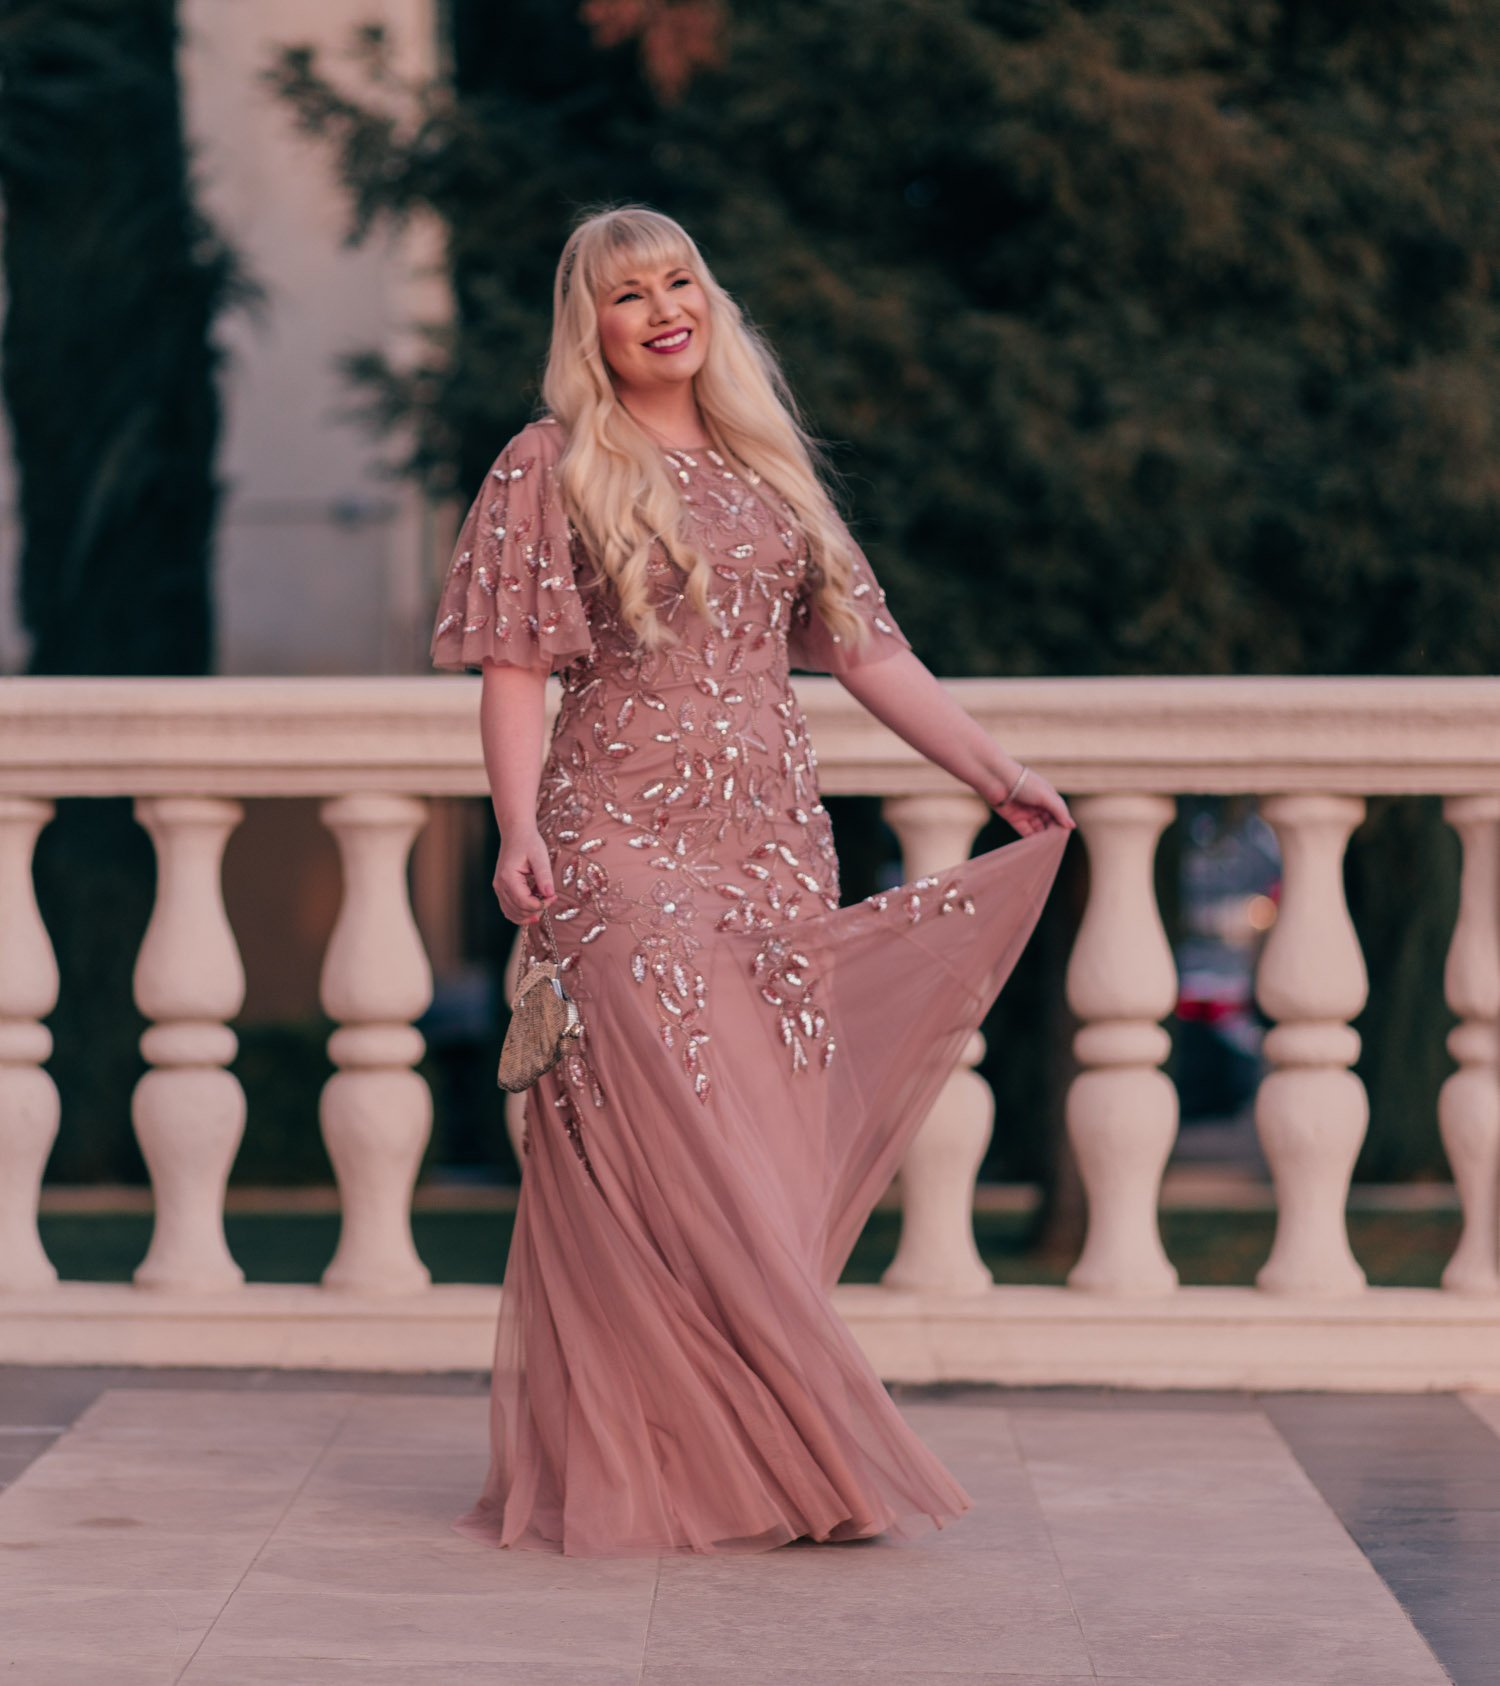 Feminine Fashion Blogger Elizabeth Hugen of Lizzie in Lace shares her 2021 New Years goals and styles a stunning pink tulle Adrianna Papell dress